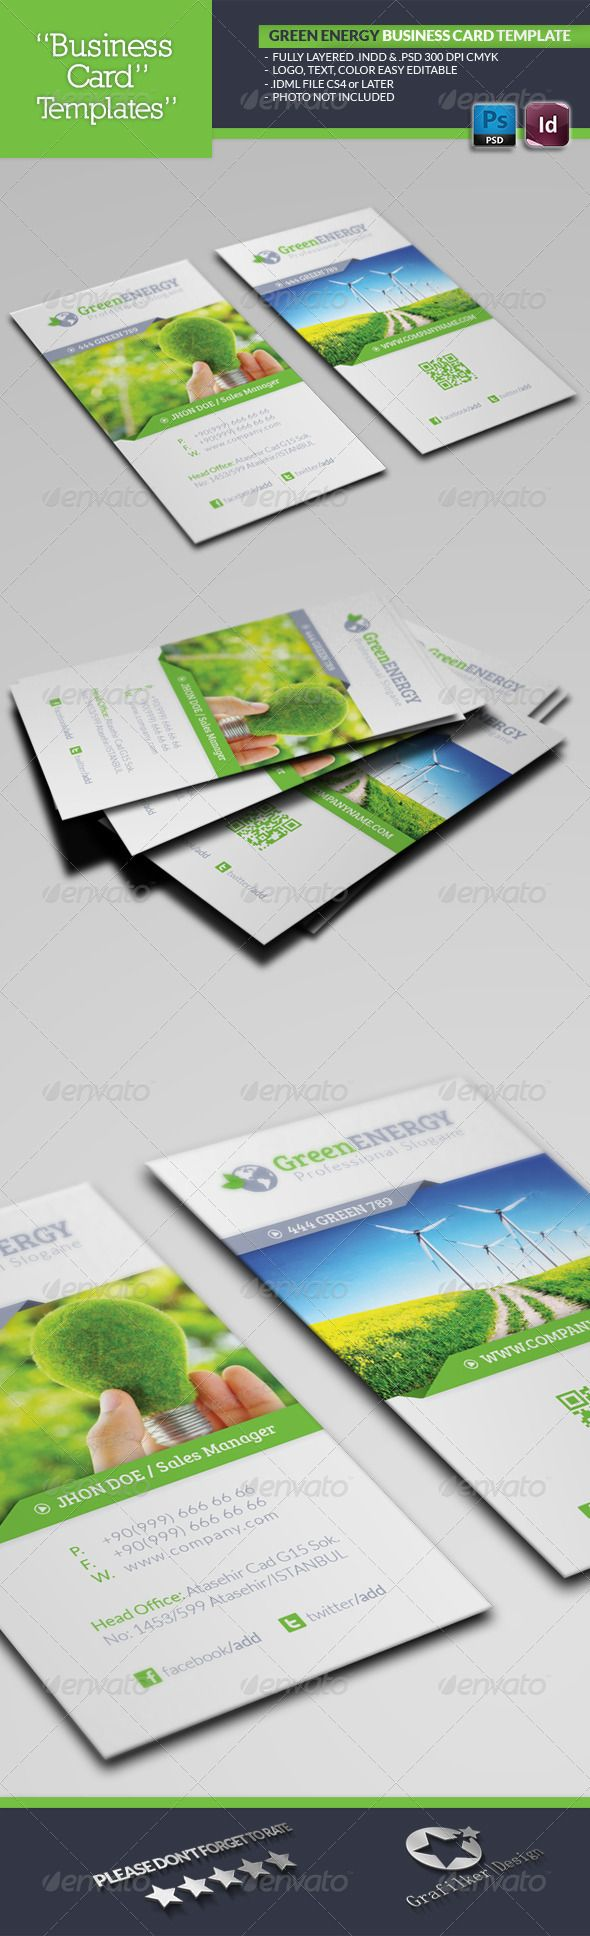 Green Energy Business Card Template PSD, InDesign INDD. Download here: http://graphicriver.net/item/green-energy-business-card-template/4897471?s_rank=108&ref=yinkira